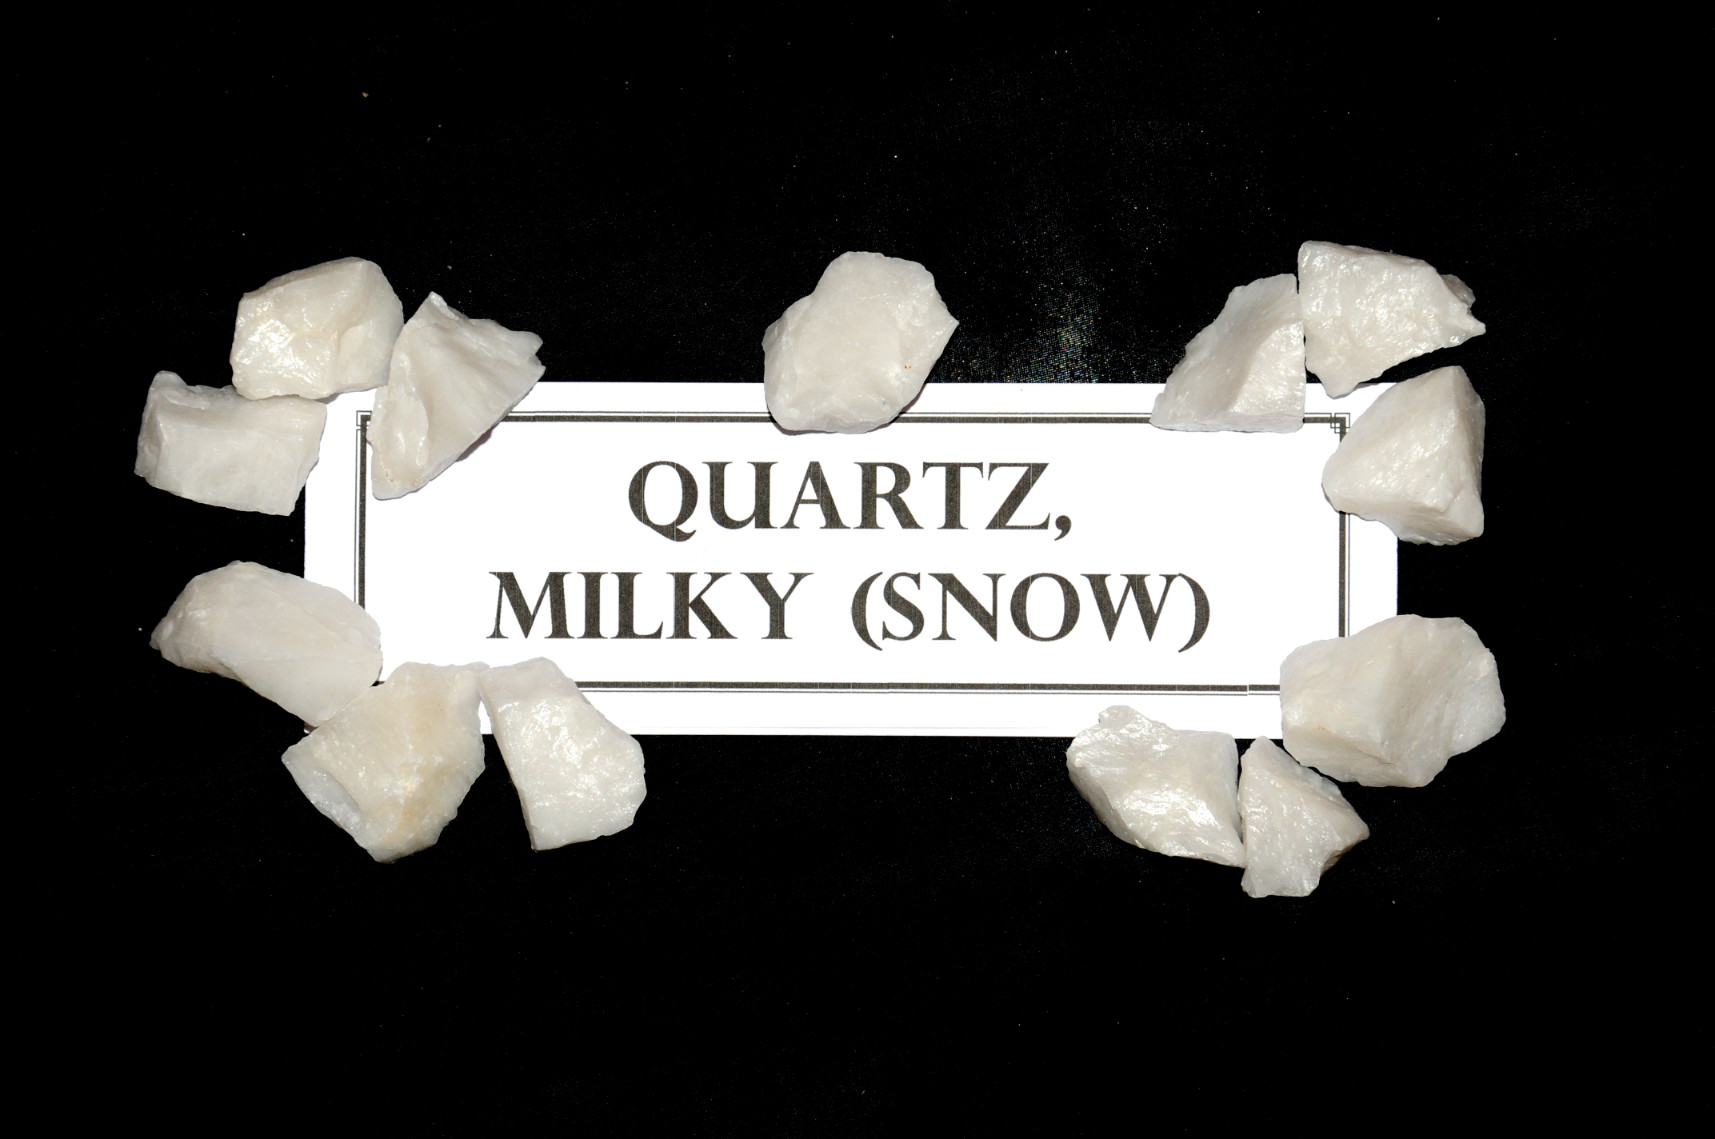 Quartz, Milky (Snow)